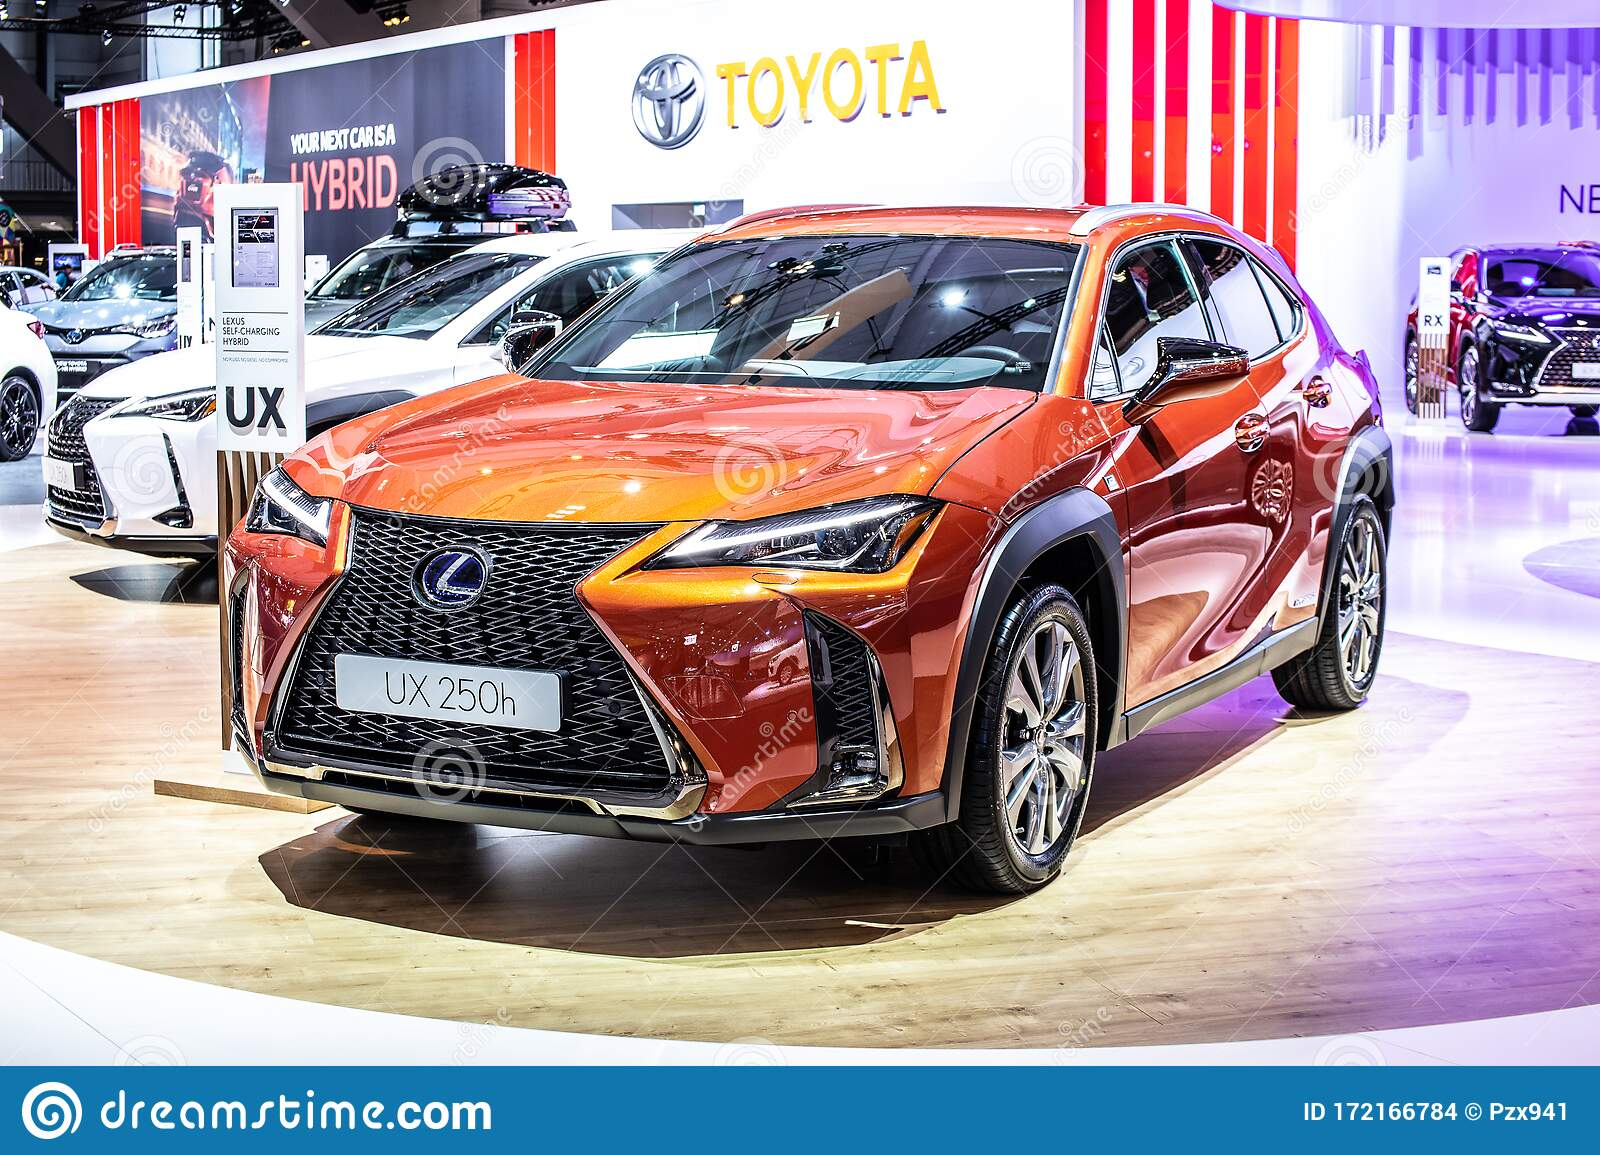 New Lexus Ux 250h Hybrid Compact Luxury Crossover At Brussels Motor Show Suv Produced By Japanese Car Maker Lexus Editorial Stock Image Image Of Brussels Expensive 172166784